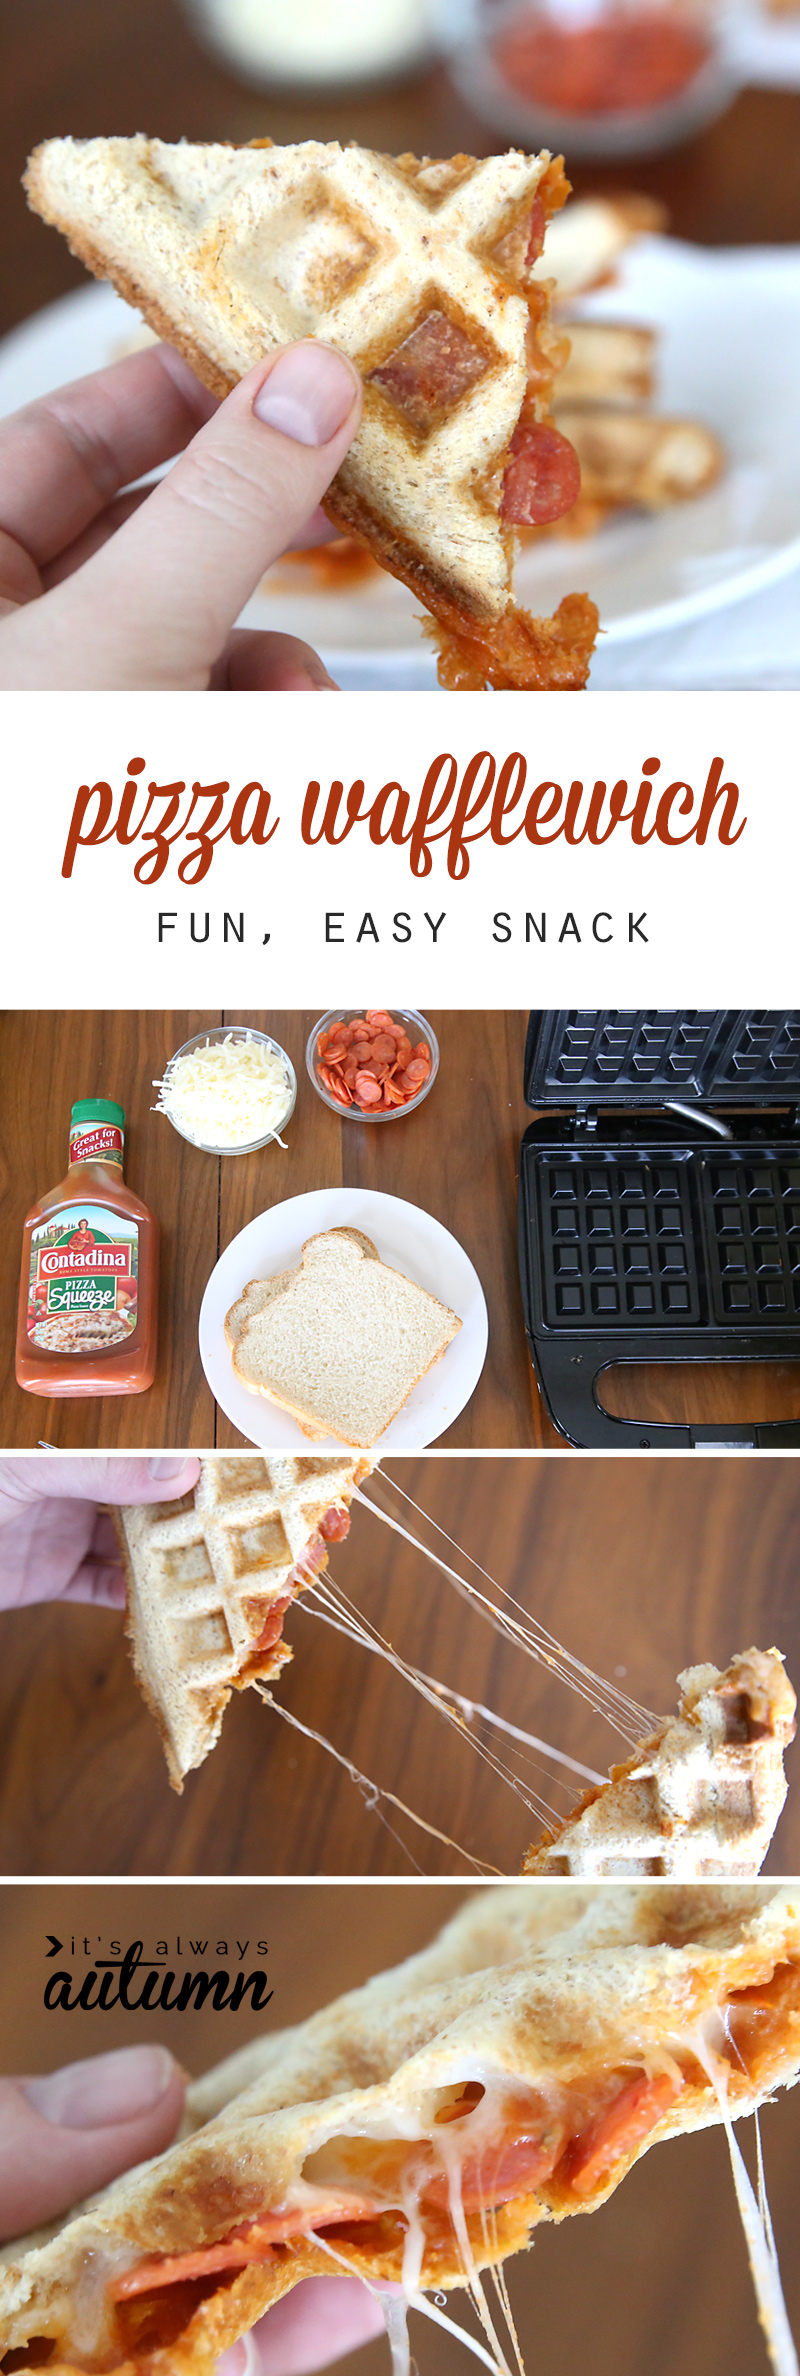 My Kids Would Love This Make Pizza In The Waffle Iron With Sandwich Bread And